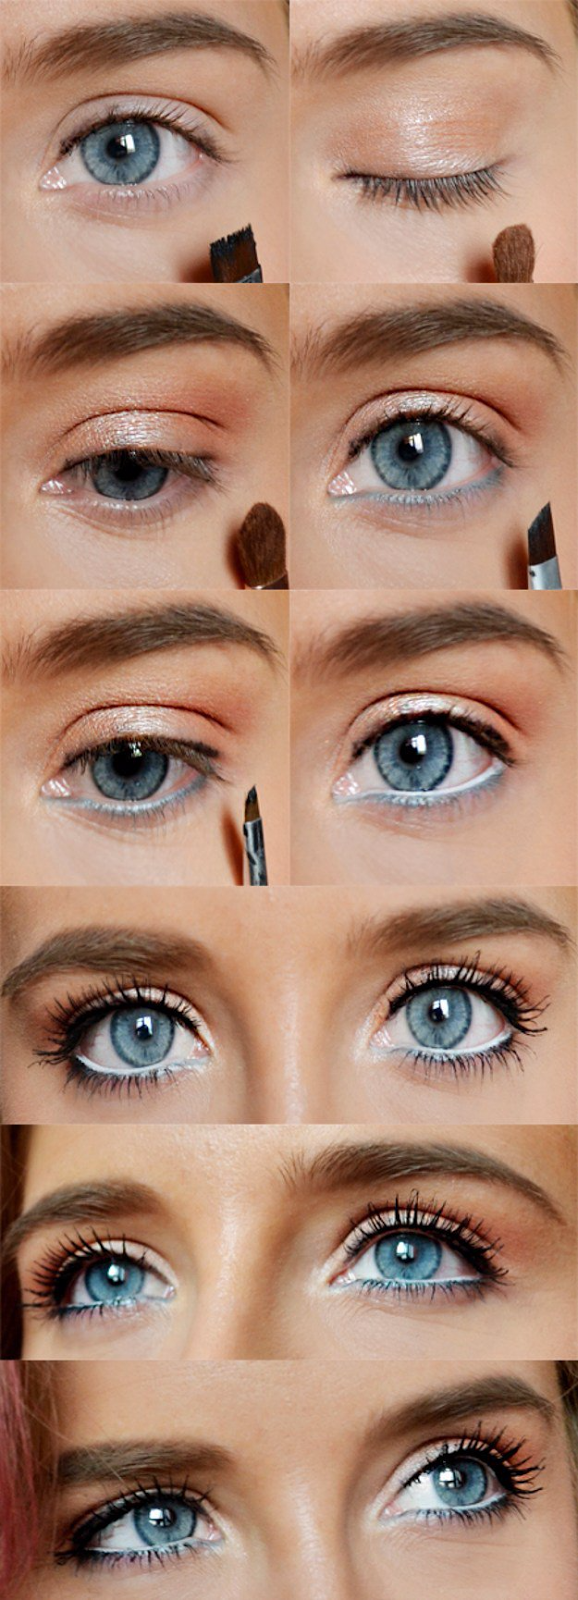 12 Makeup Tutorials for Blue Eyes